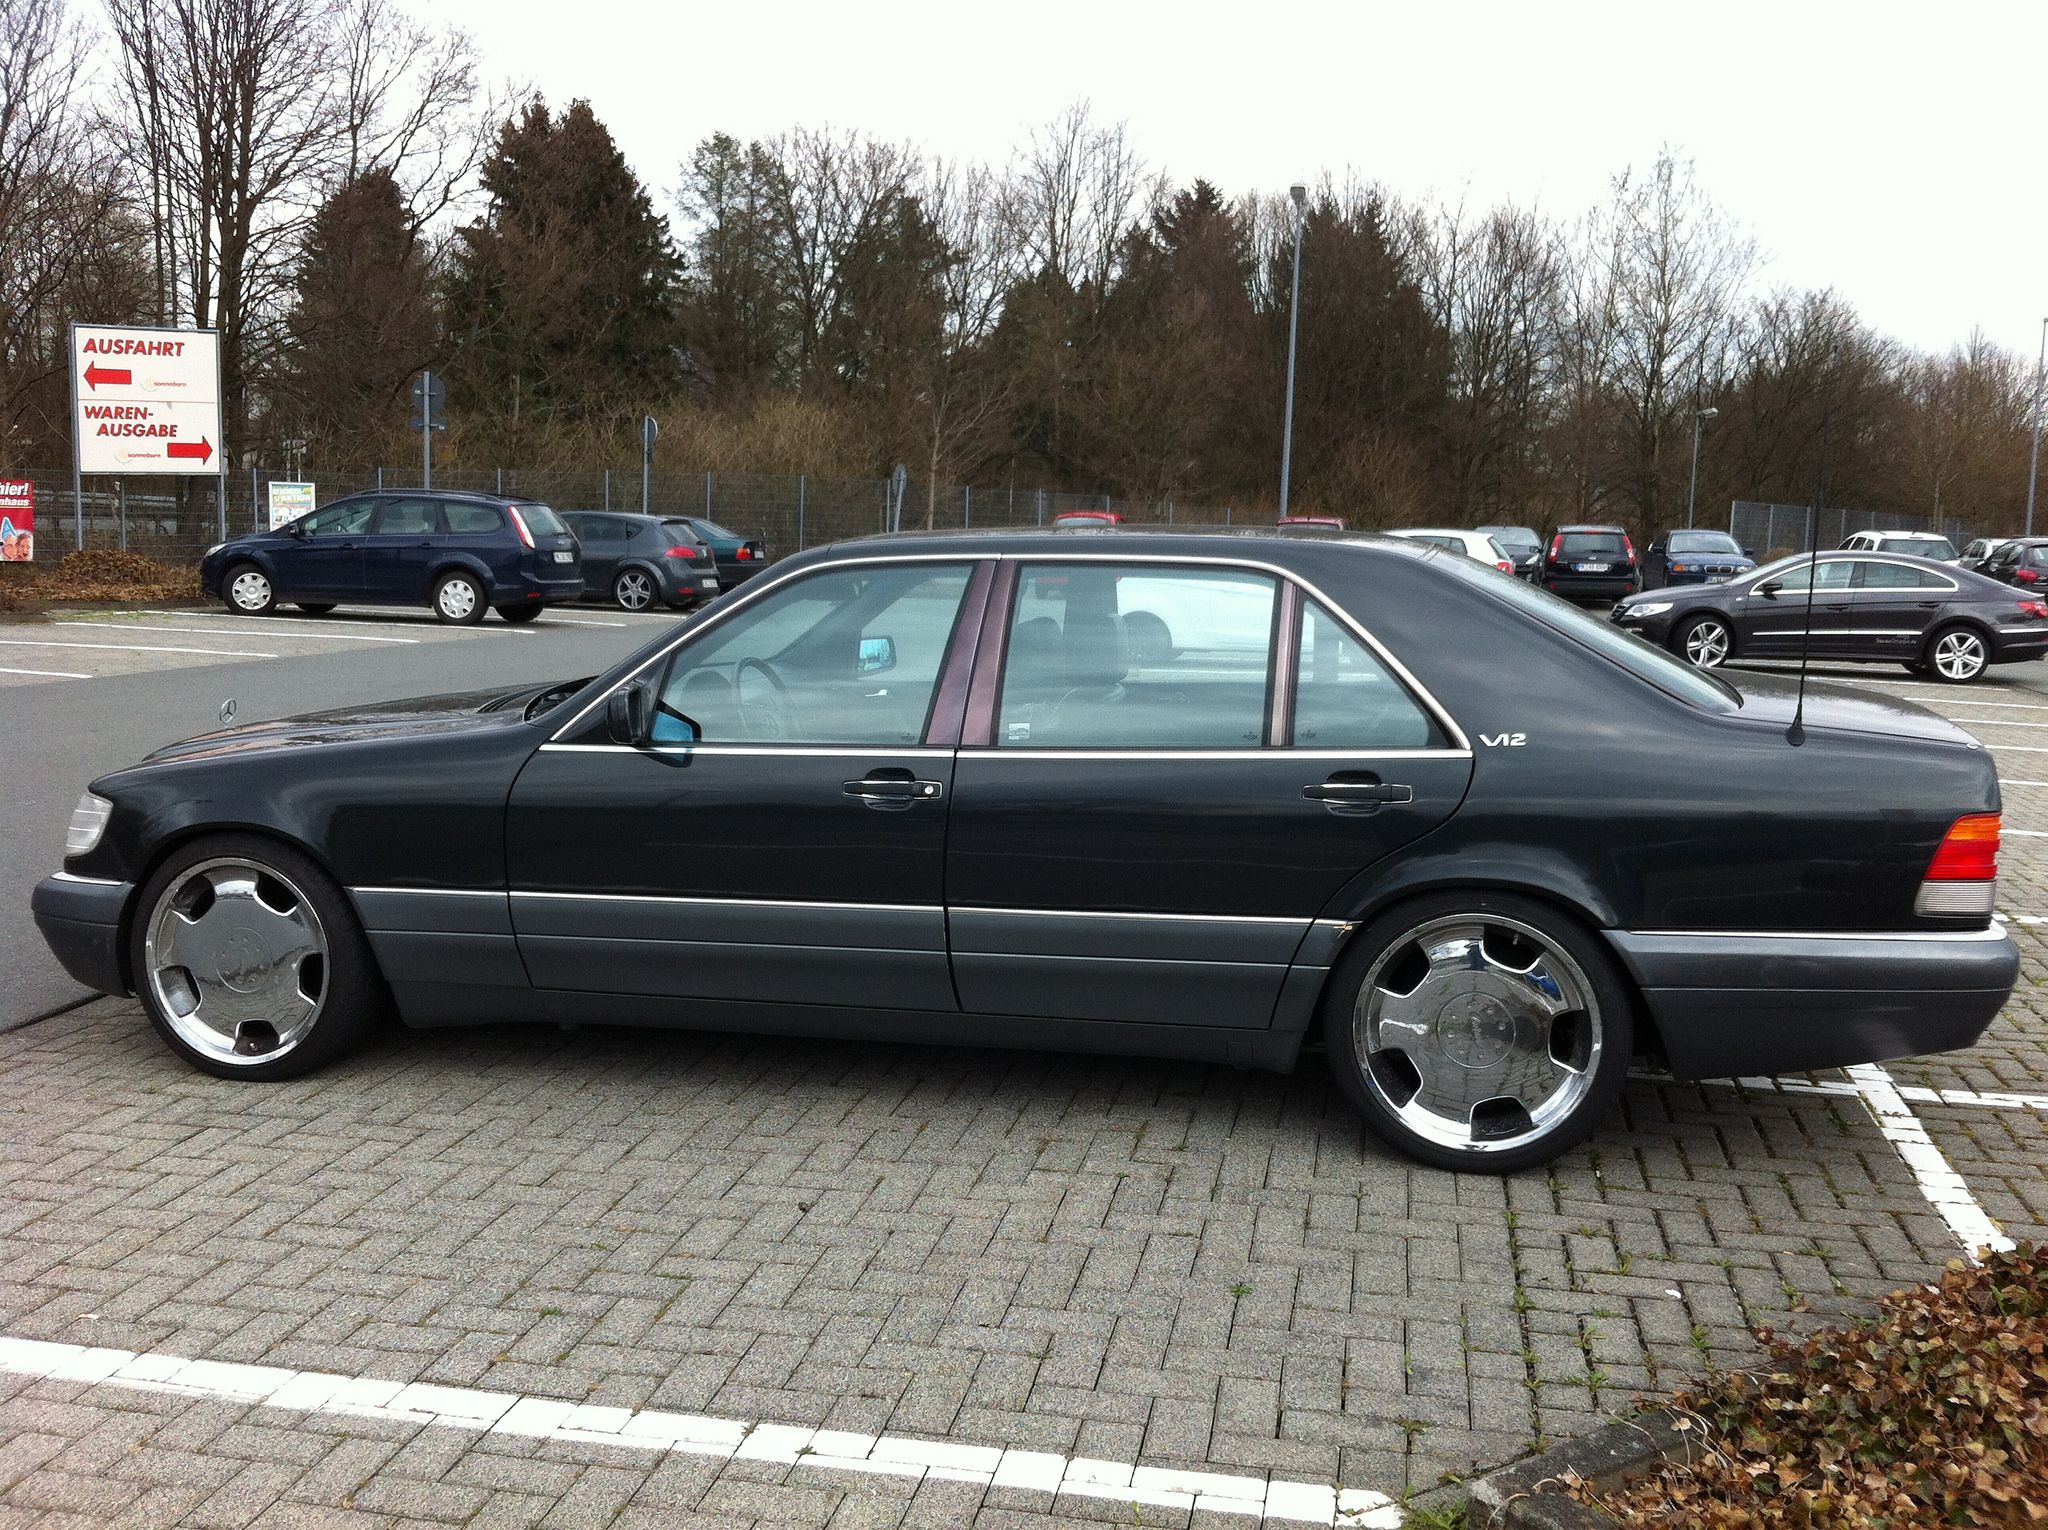 Mercedes S Class W140 Tuning 1 Tuning Mercedes Benz Cars Mercedes Benz 500 Mercedes Benz